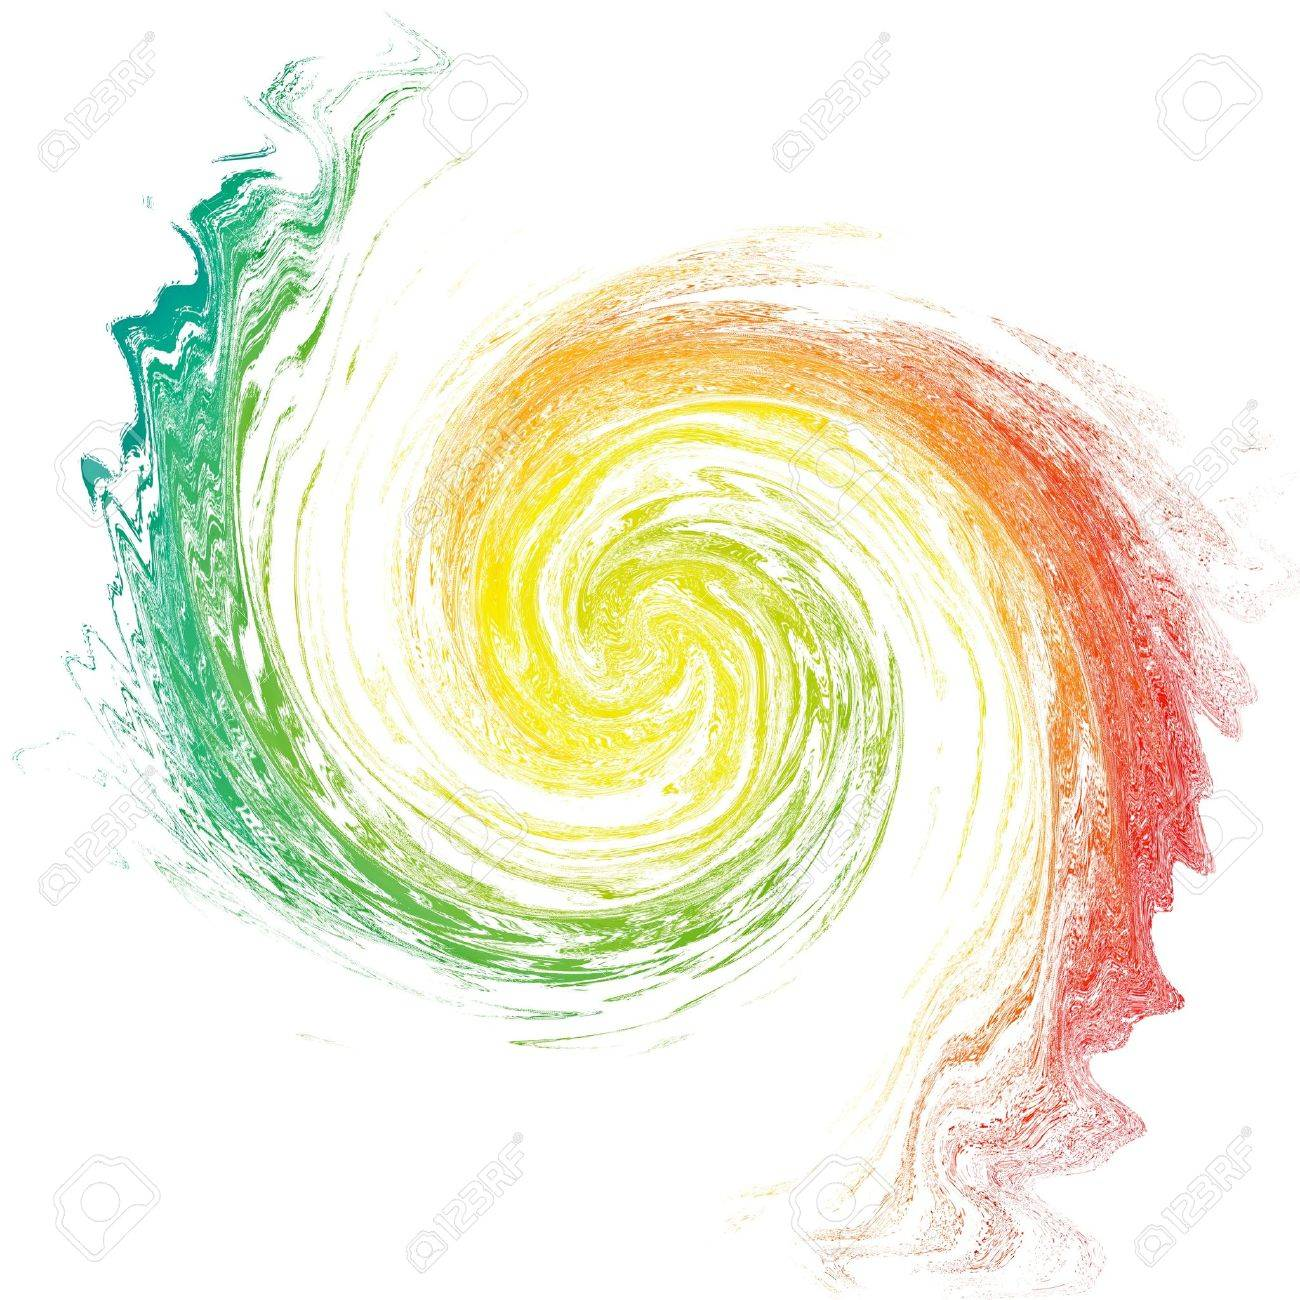 Multicolor vortex isolated on white Abstract backdrop Illustration - 14658256